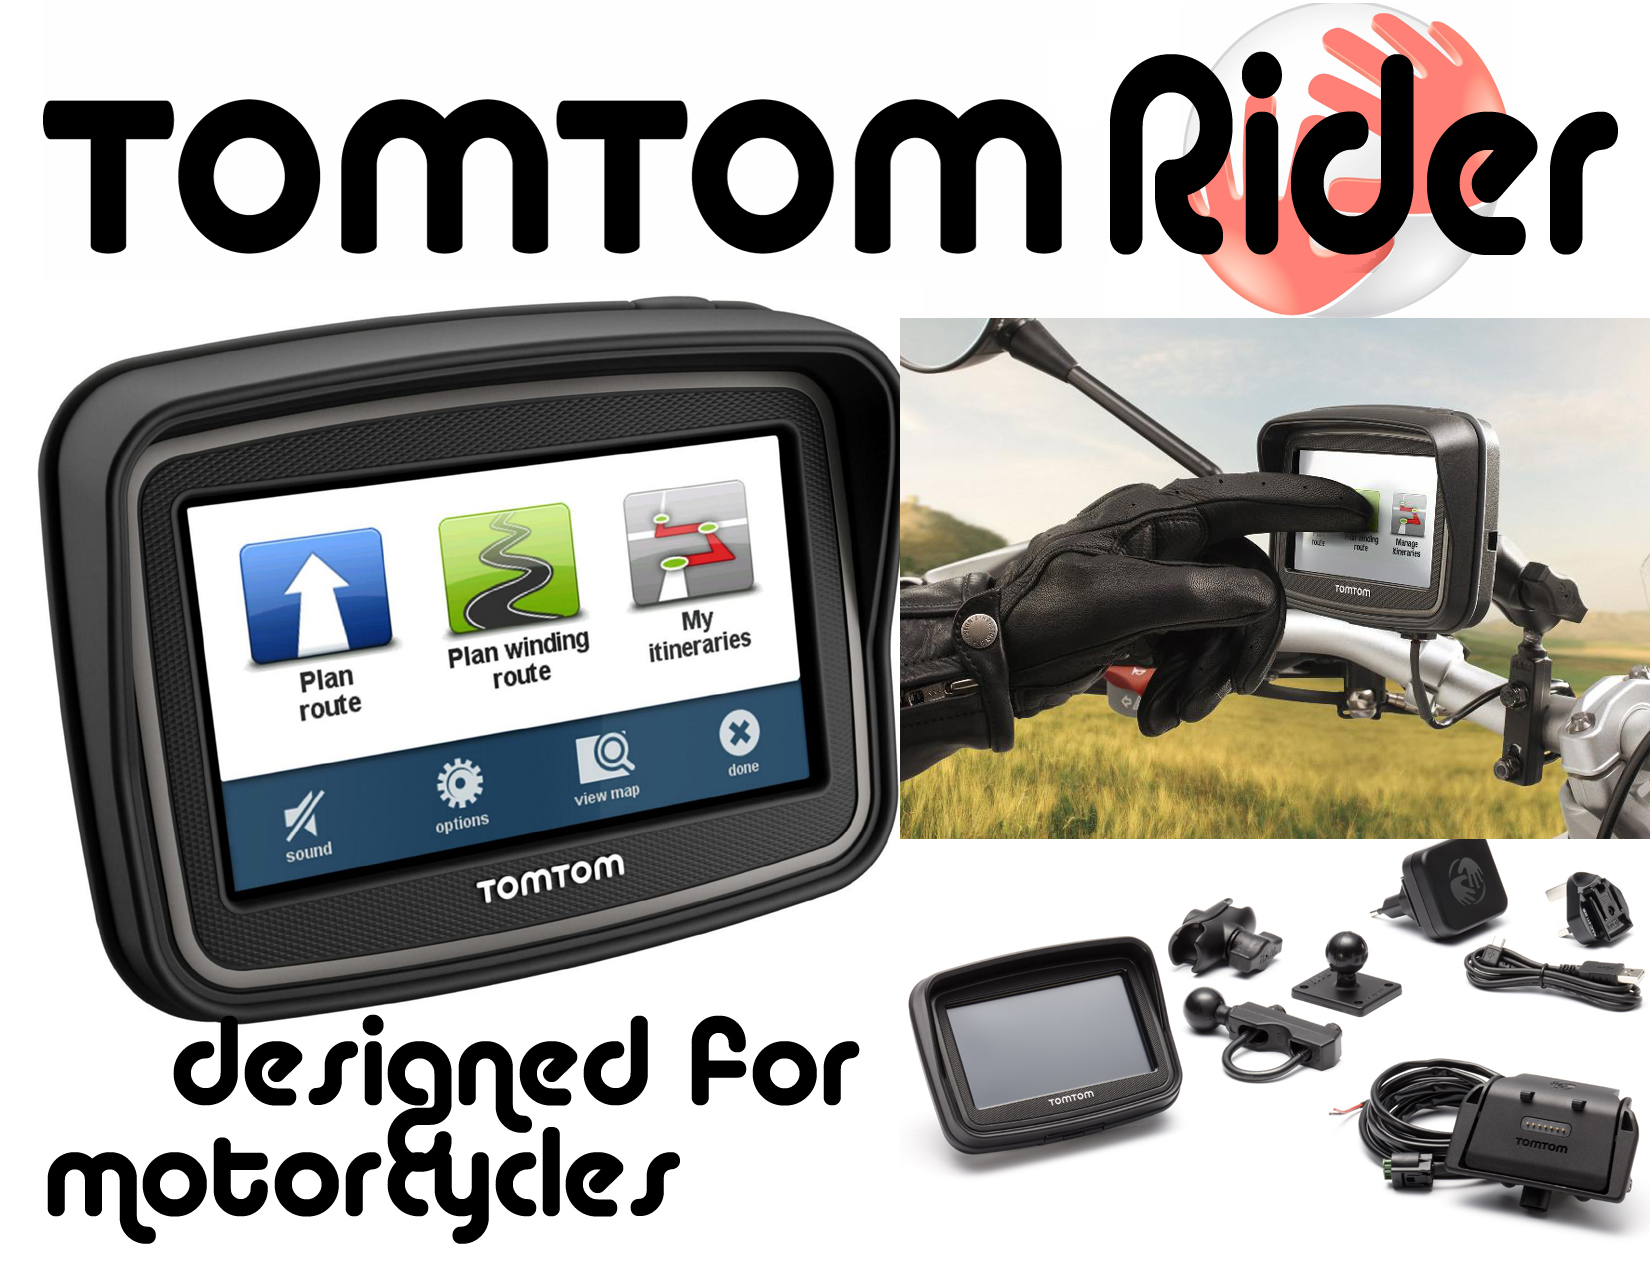 tomtom rider motorcycle gps kit motorcycle product. Black Bedroom Furniture Sets. Home Design Ideas